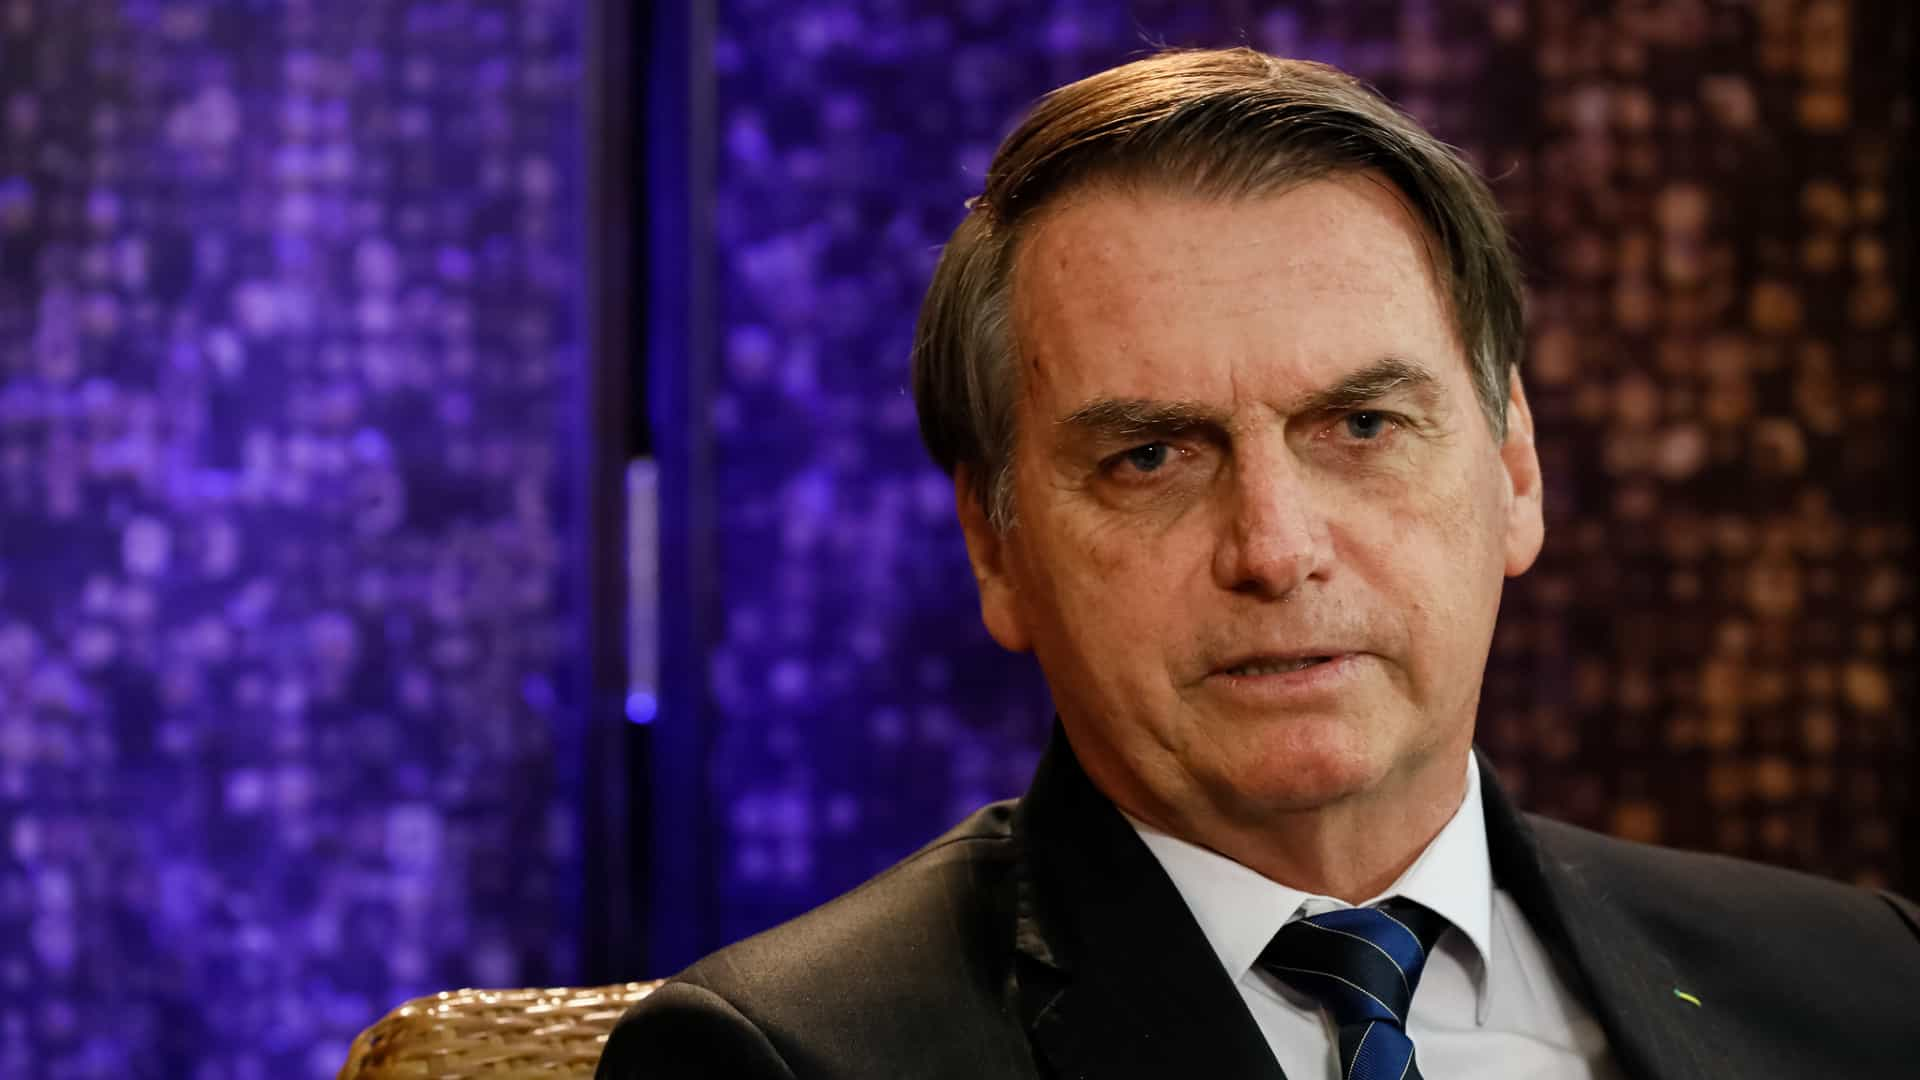 Photo of Jornalismo da Globo usa mentira contra Bolsonaro